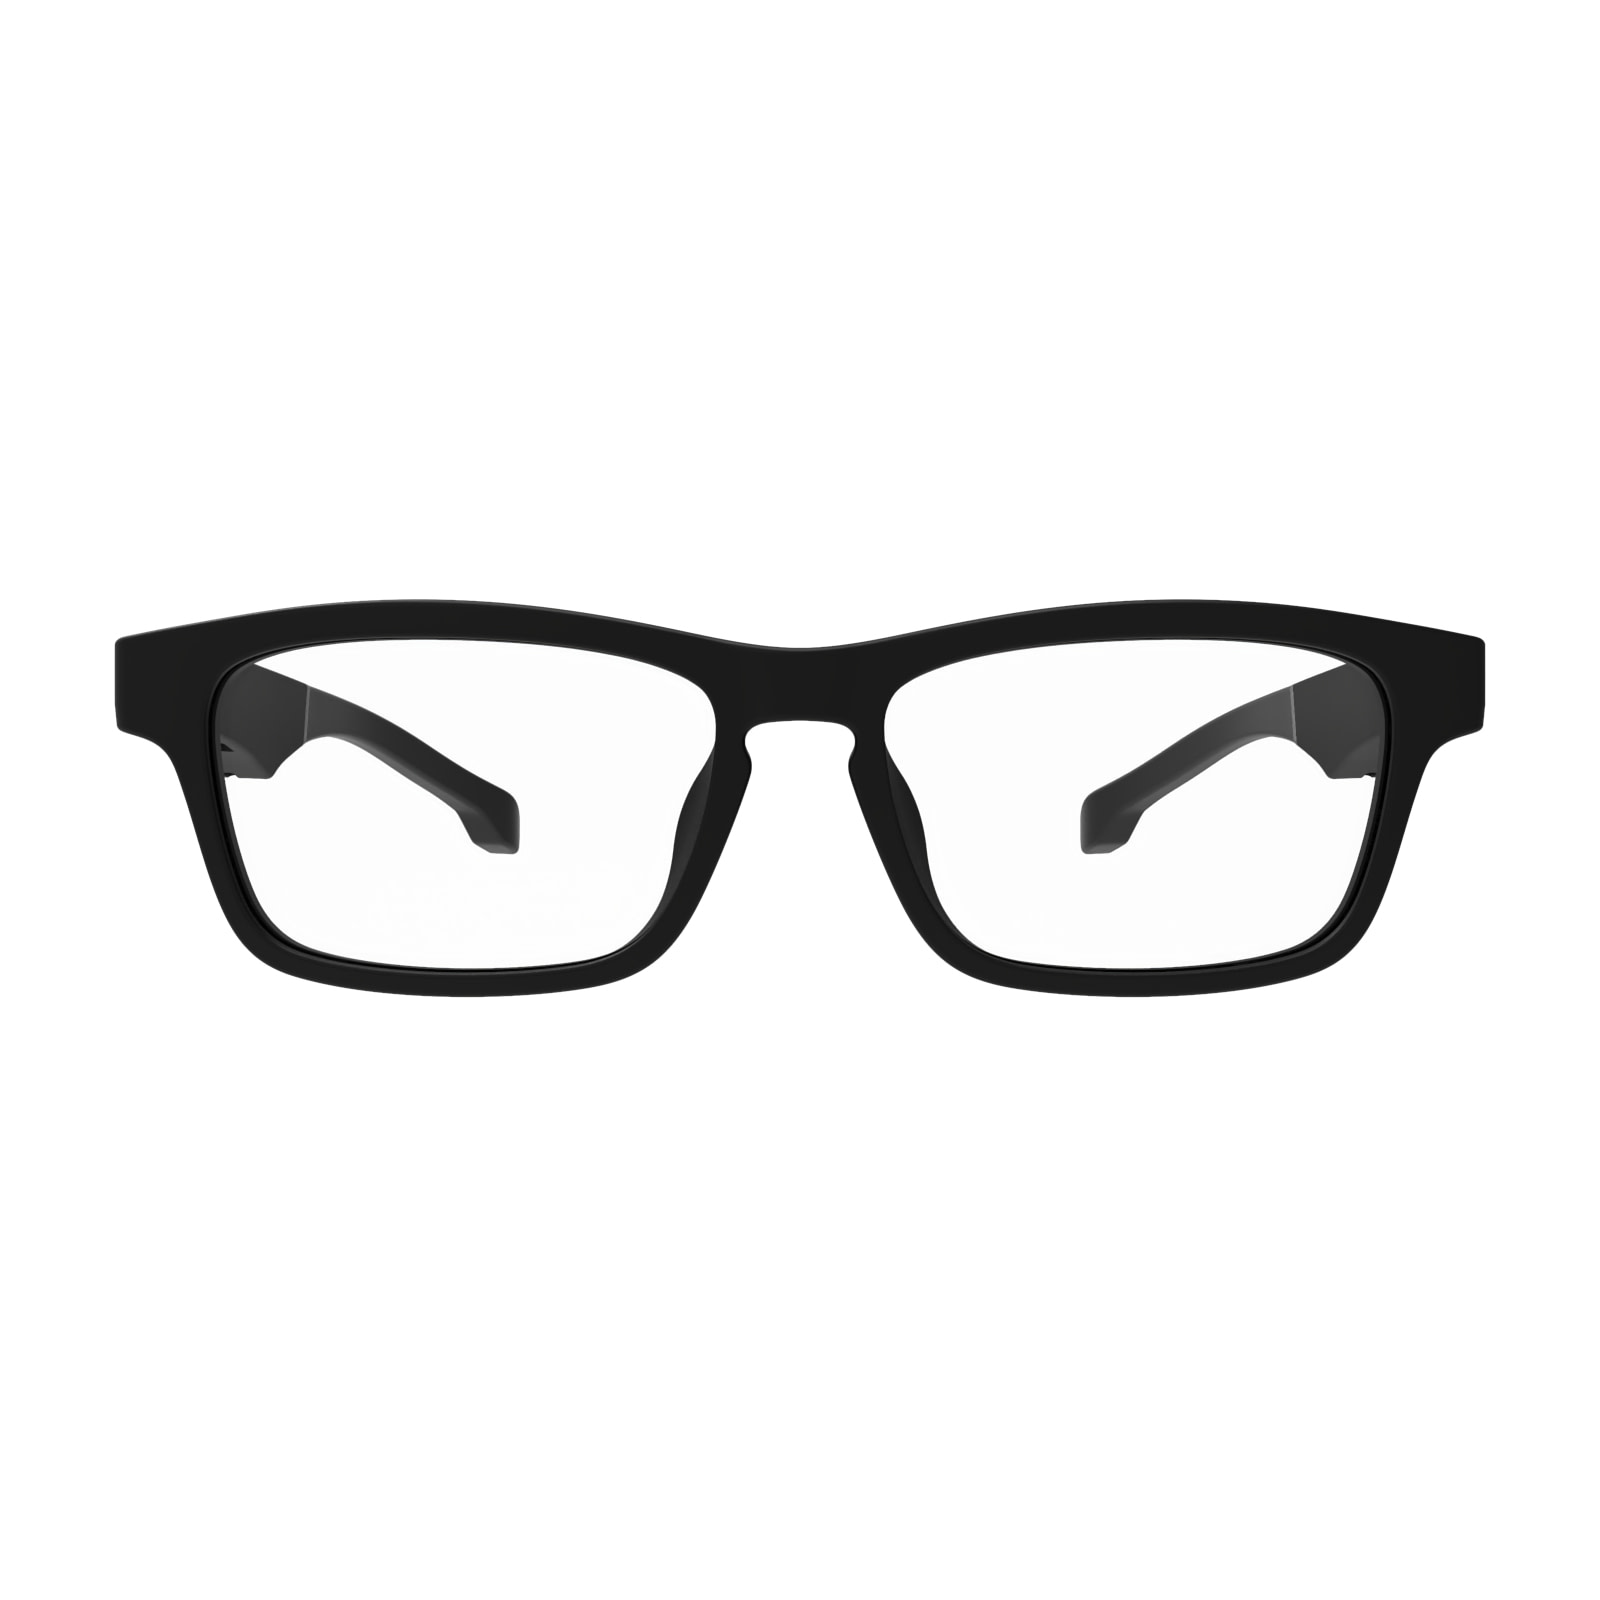 shield z1 spectacles front